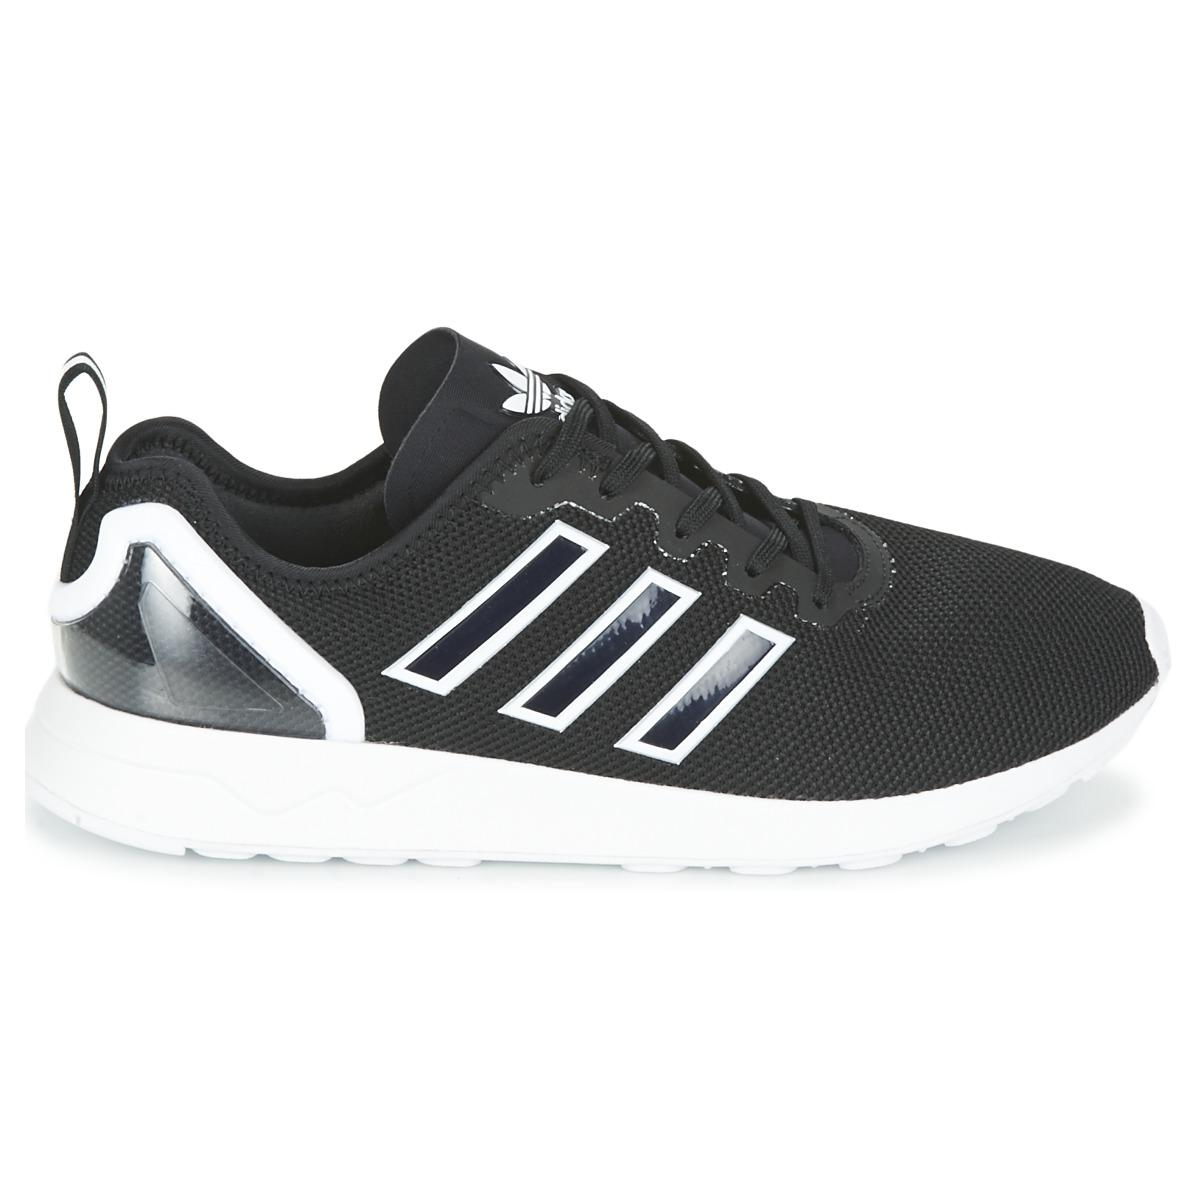 f6f071ad6 Adidas - Black Zx Flux Racer Shoes (trainers) for Men - Lyst. View  fullscreen